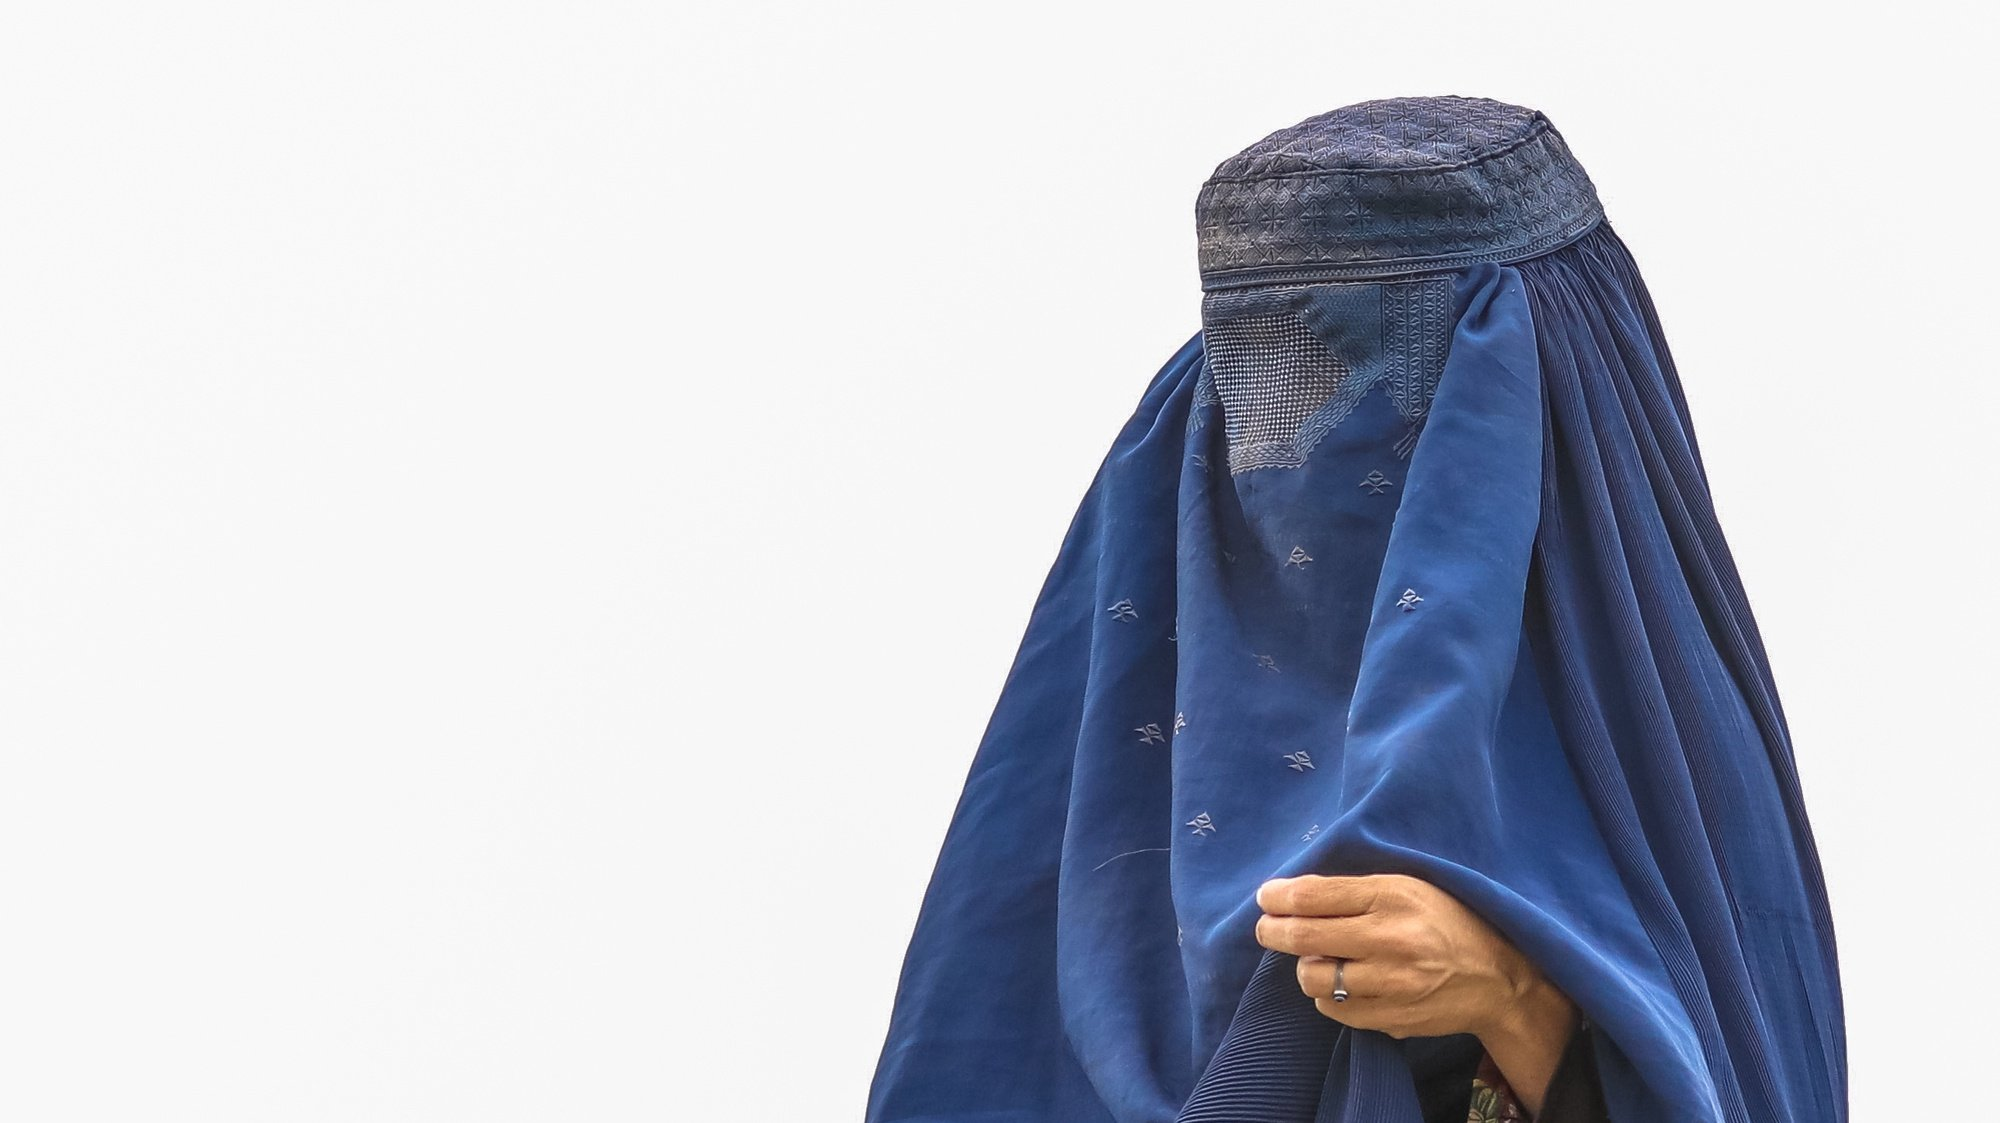 epa09414570 An Afghan burqa-clad women from northern provinces stands near her shelter after she fled from her home due to the fighting between Taliban and Afghan security forces, in a public park in Kabul, Afghanistan, 14 August (issued 15 August). The Taliban captured Mazar-i-Sharif, the country's fourth-largest city and the government's last major stronghold in the north on 14 August, as they tightened their grip on the country and closed in on Kabul. Most of the remote districts of the provinces have already fallen to the Taliban in the past three months.  EPA/HEDAYATULLAH AMID